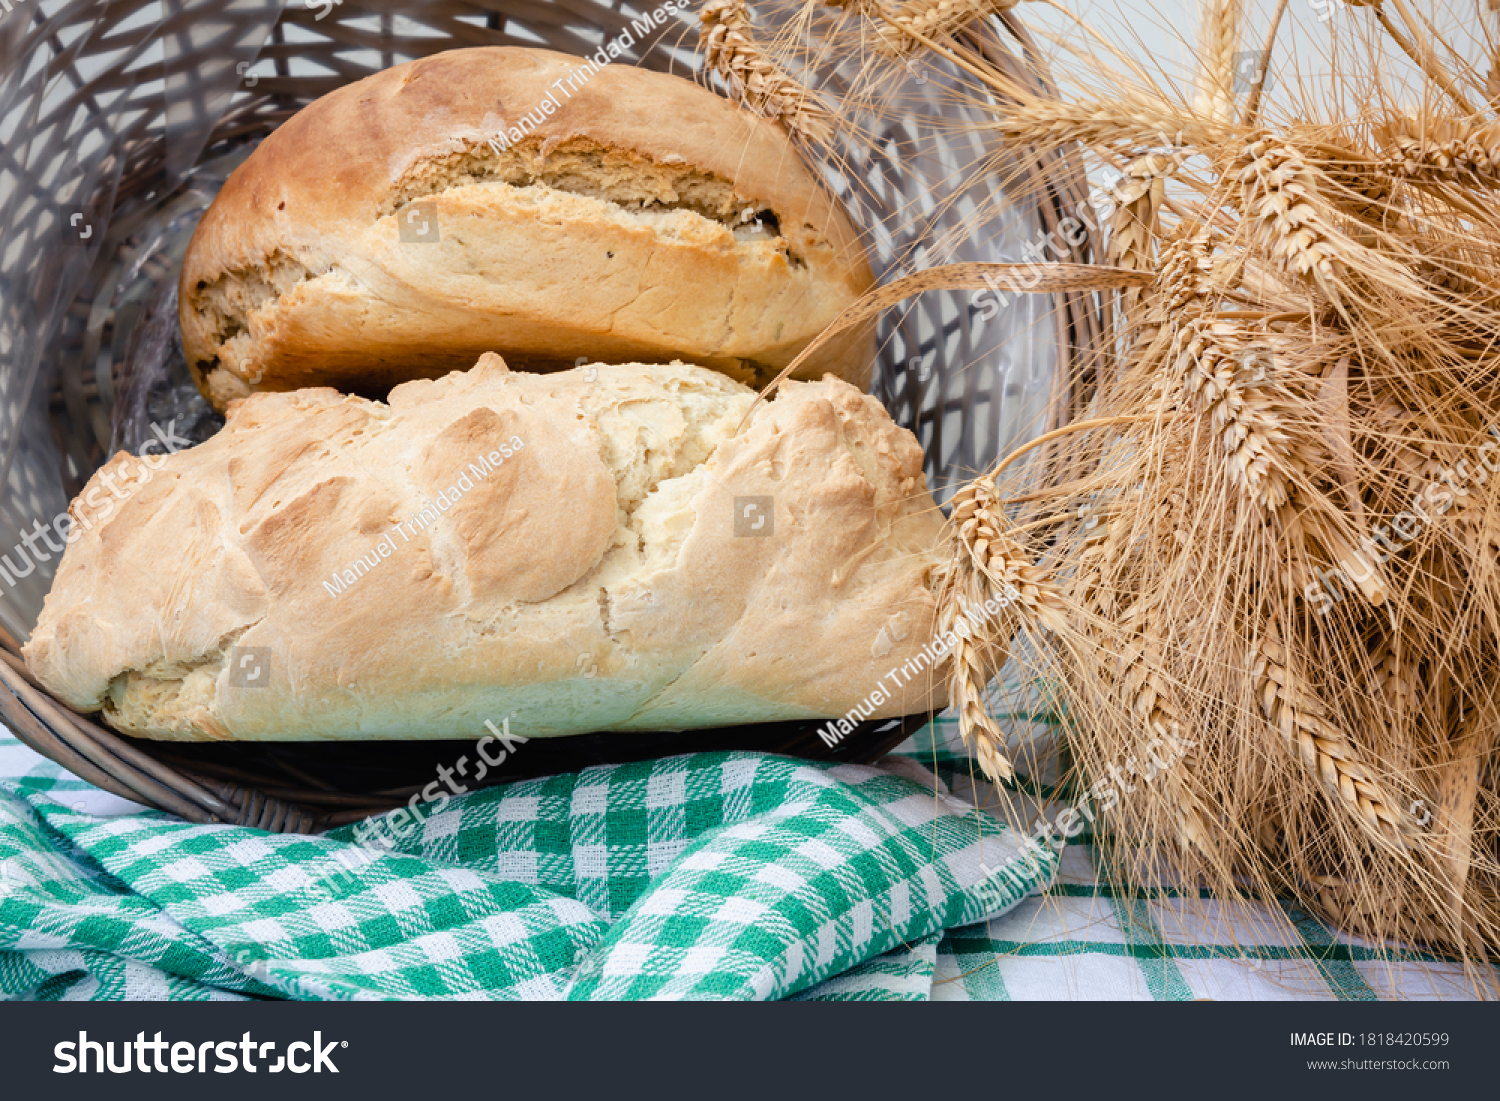 Two pieces of homemade bread inside a wicker basket